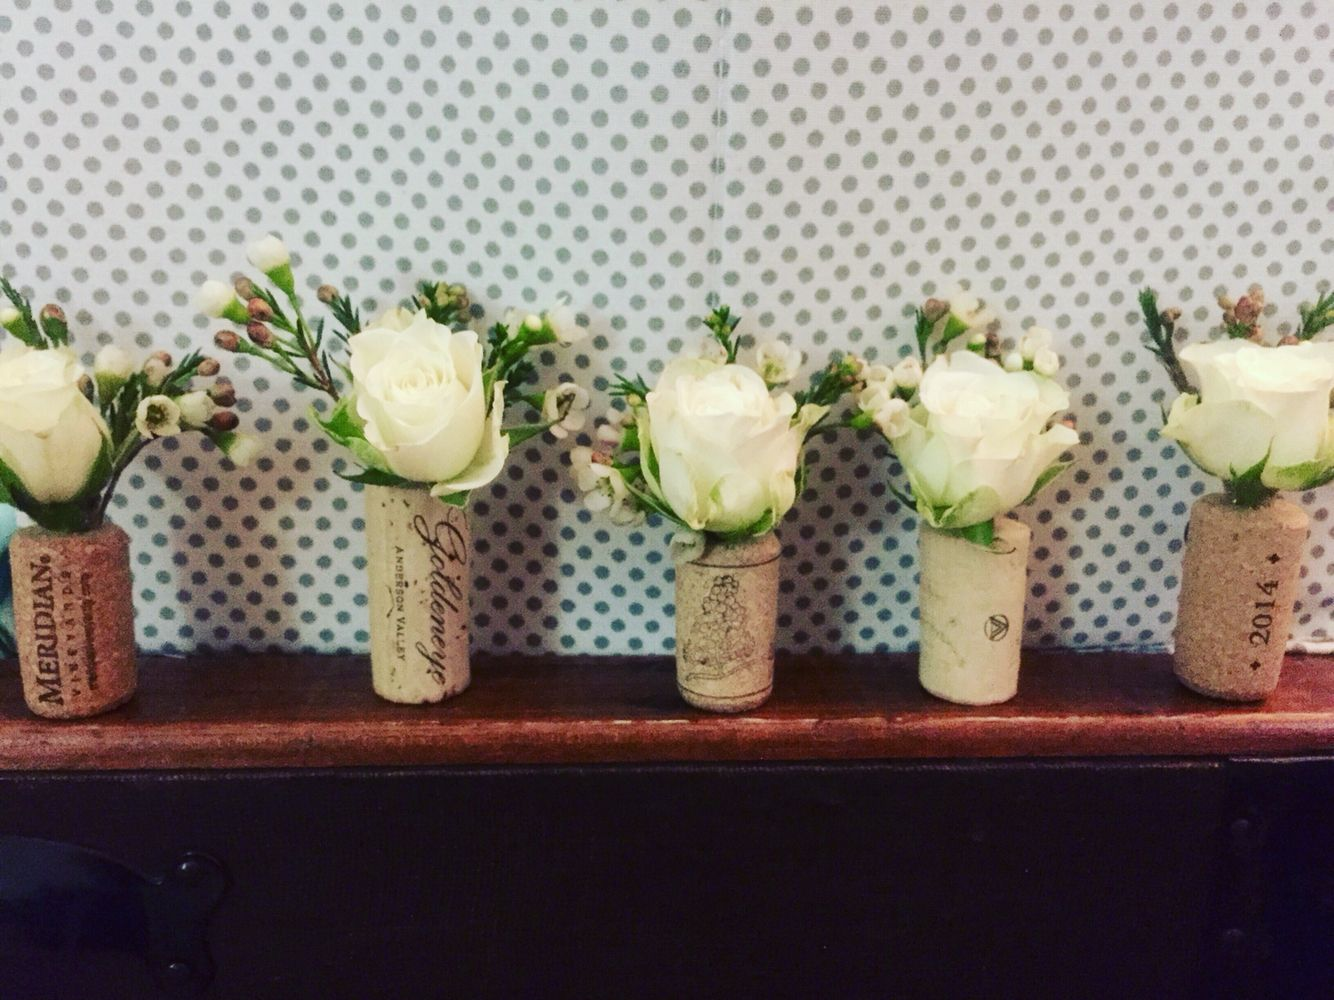 Wine Cork Boutineers and frest flowers